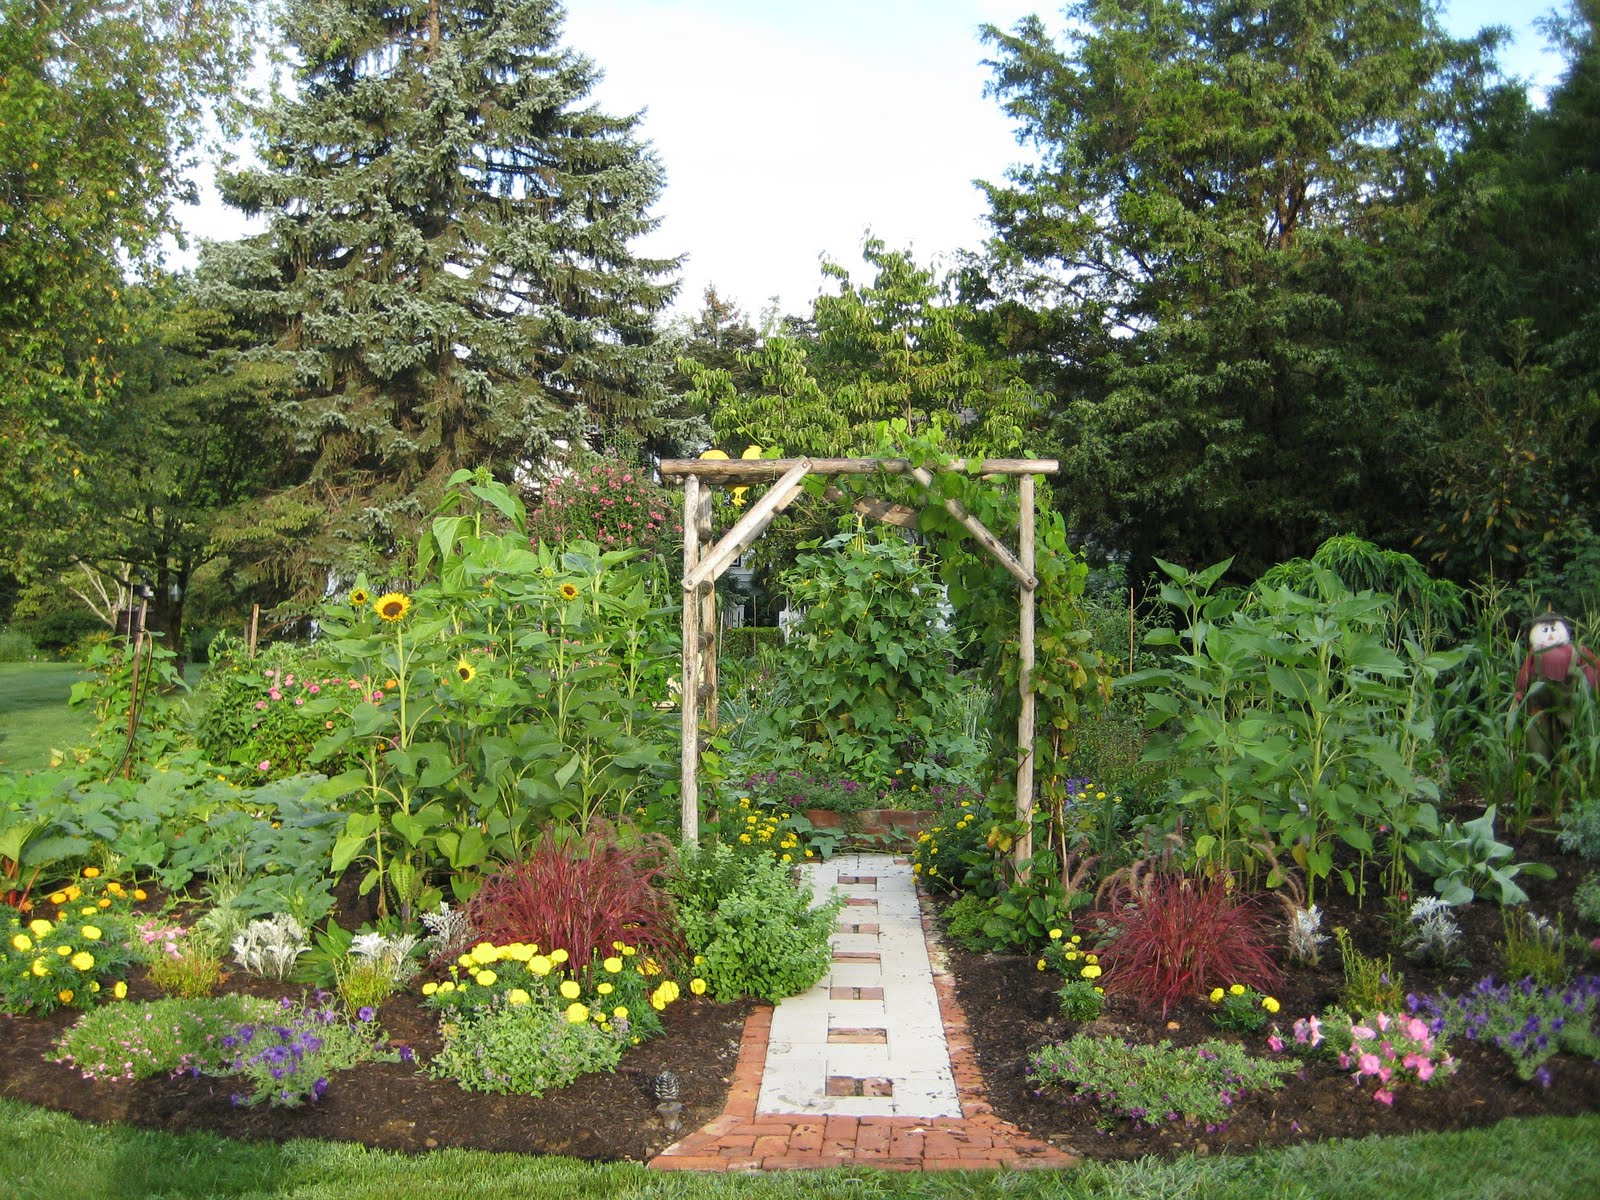 Landscaping With Vegetable Garden : Master gardeners of rockland edible gardening